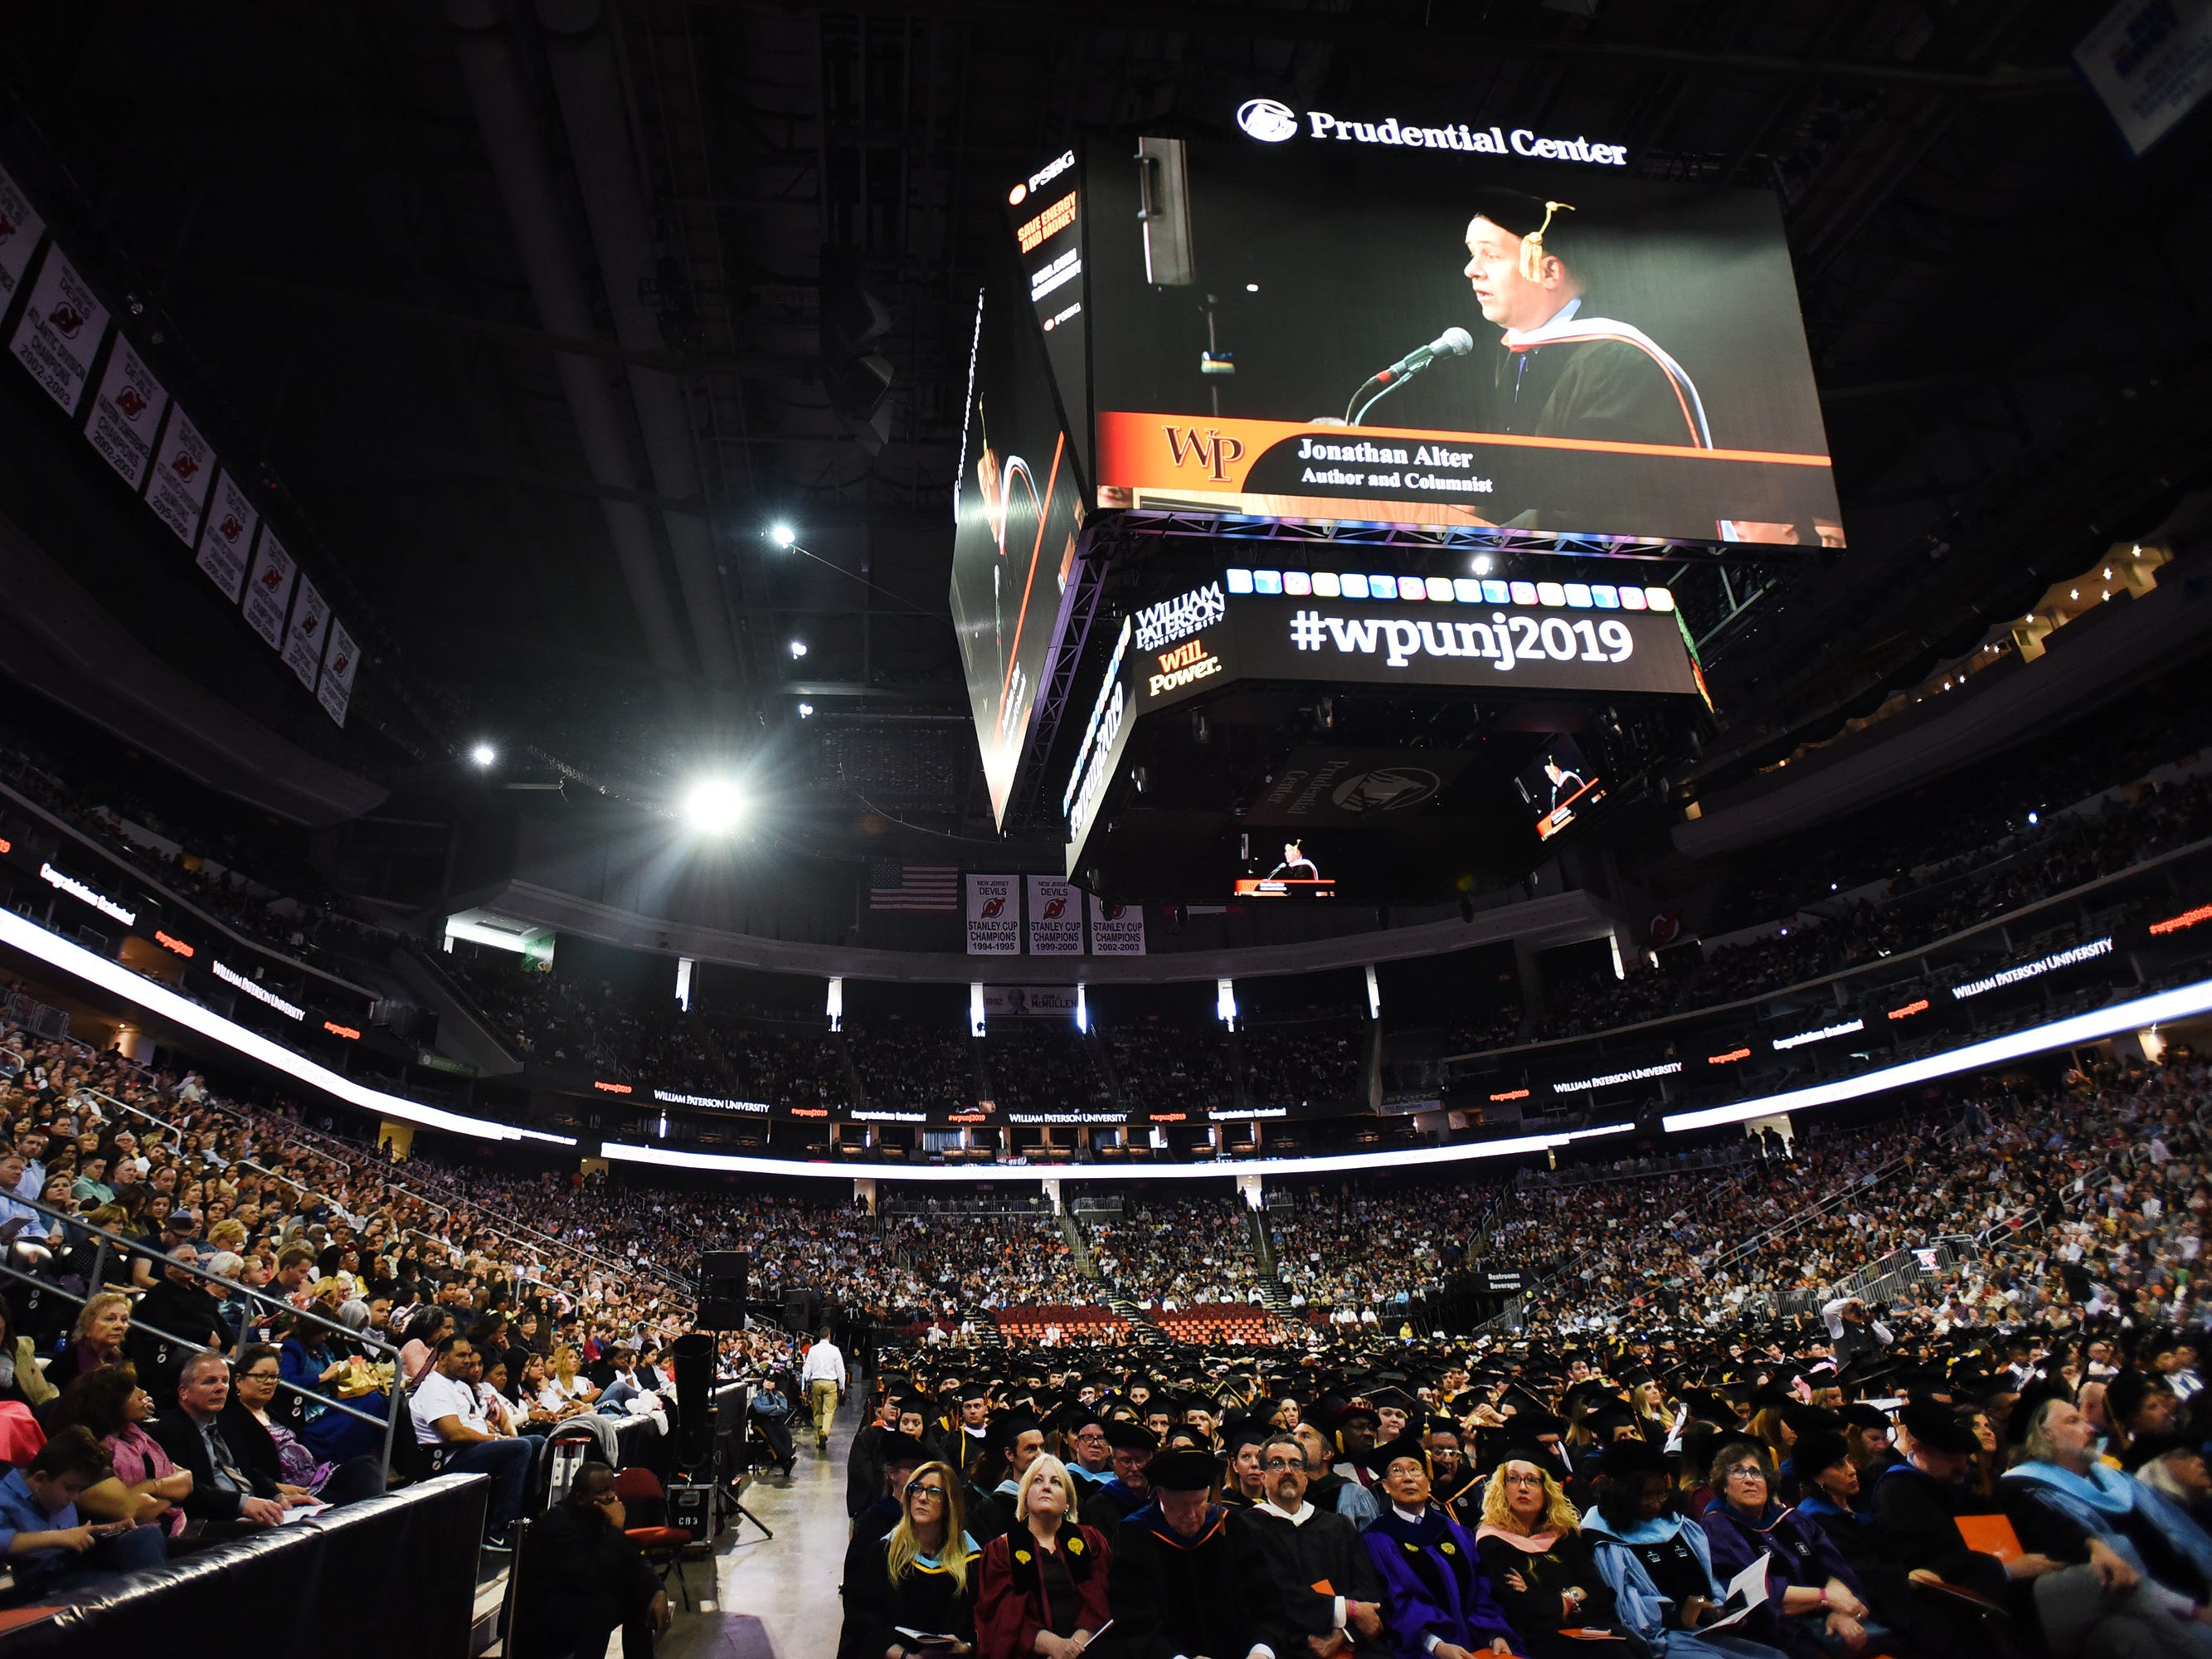 Keynote Speaker, Jonathan Alter, Author and Columnist, shown on the overhead screen as he gives a Commencement Address during the William Paterson University 2019 Commencement at the Prudential Center in Newark on 05/15/19.